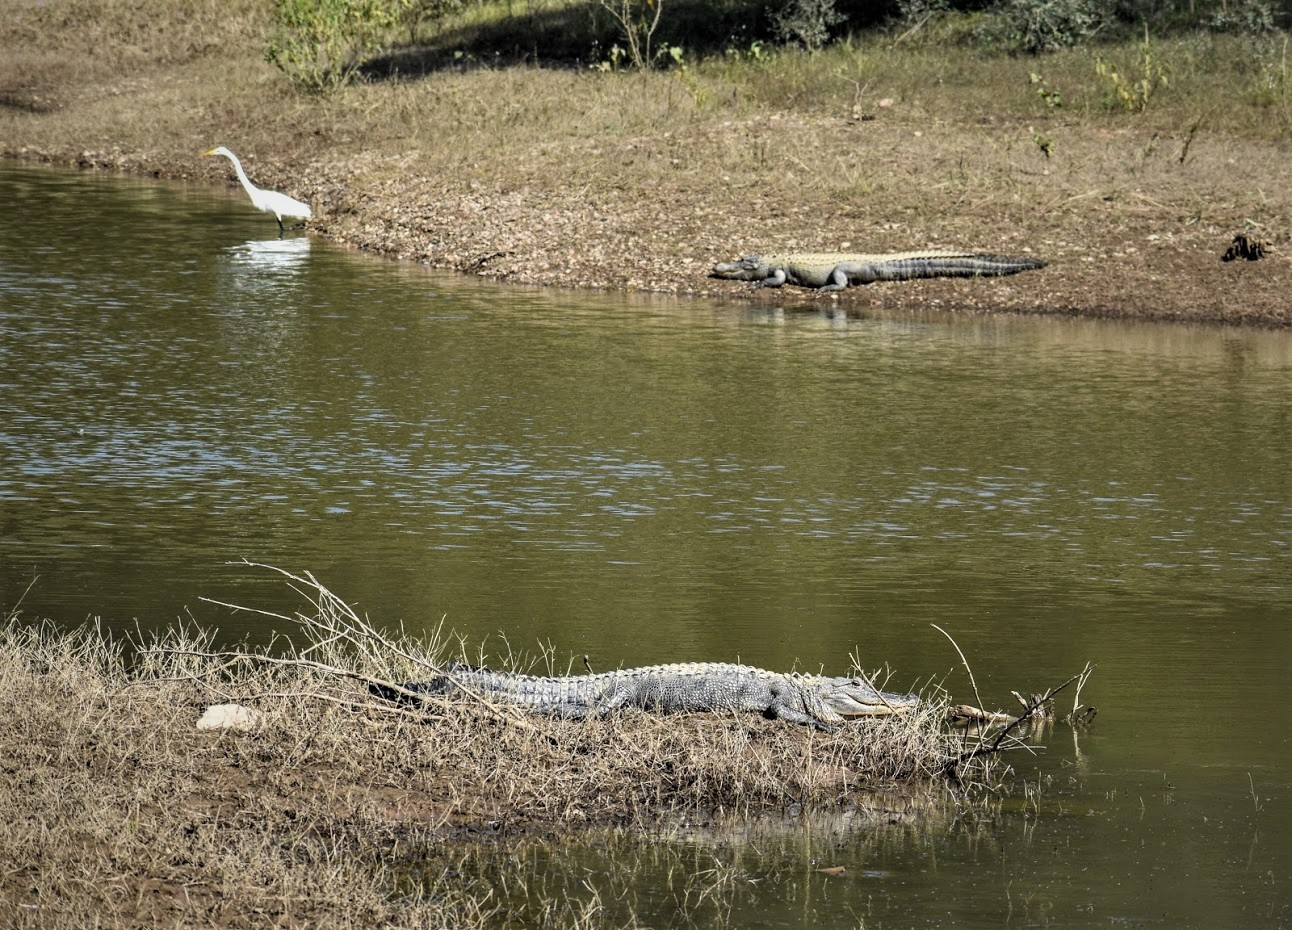 two alligators sunning with a great egret nearby